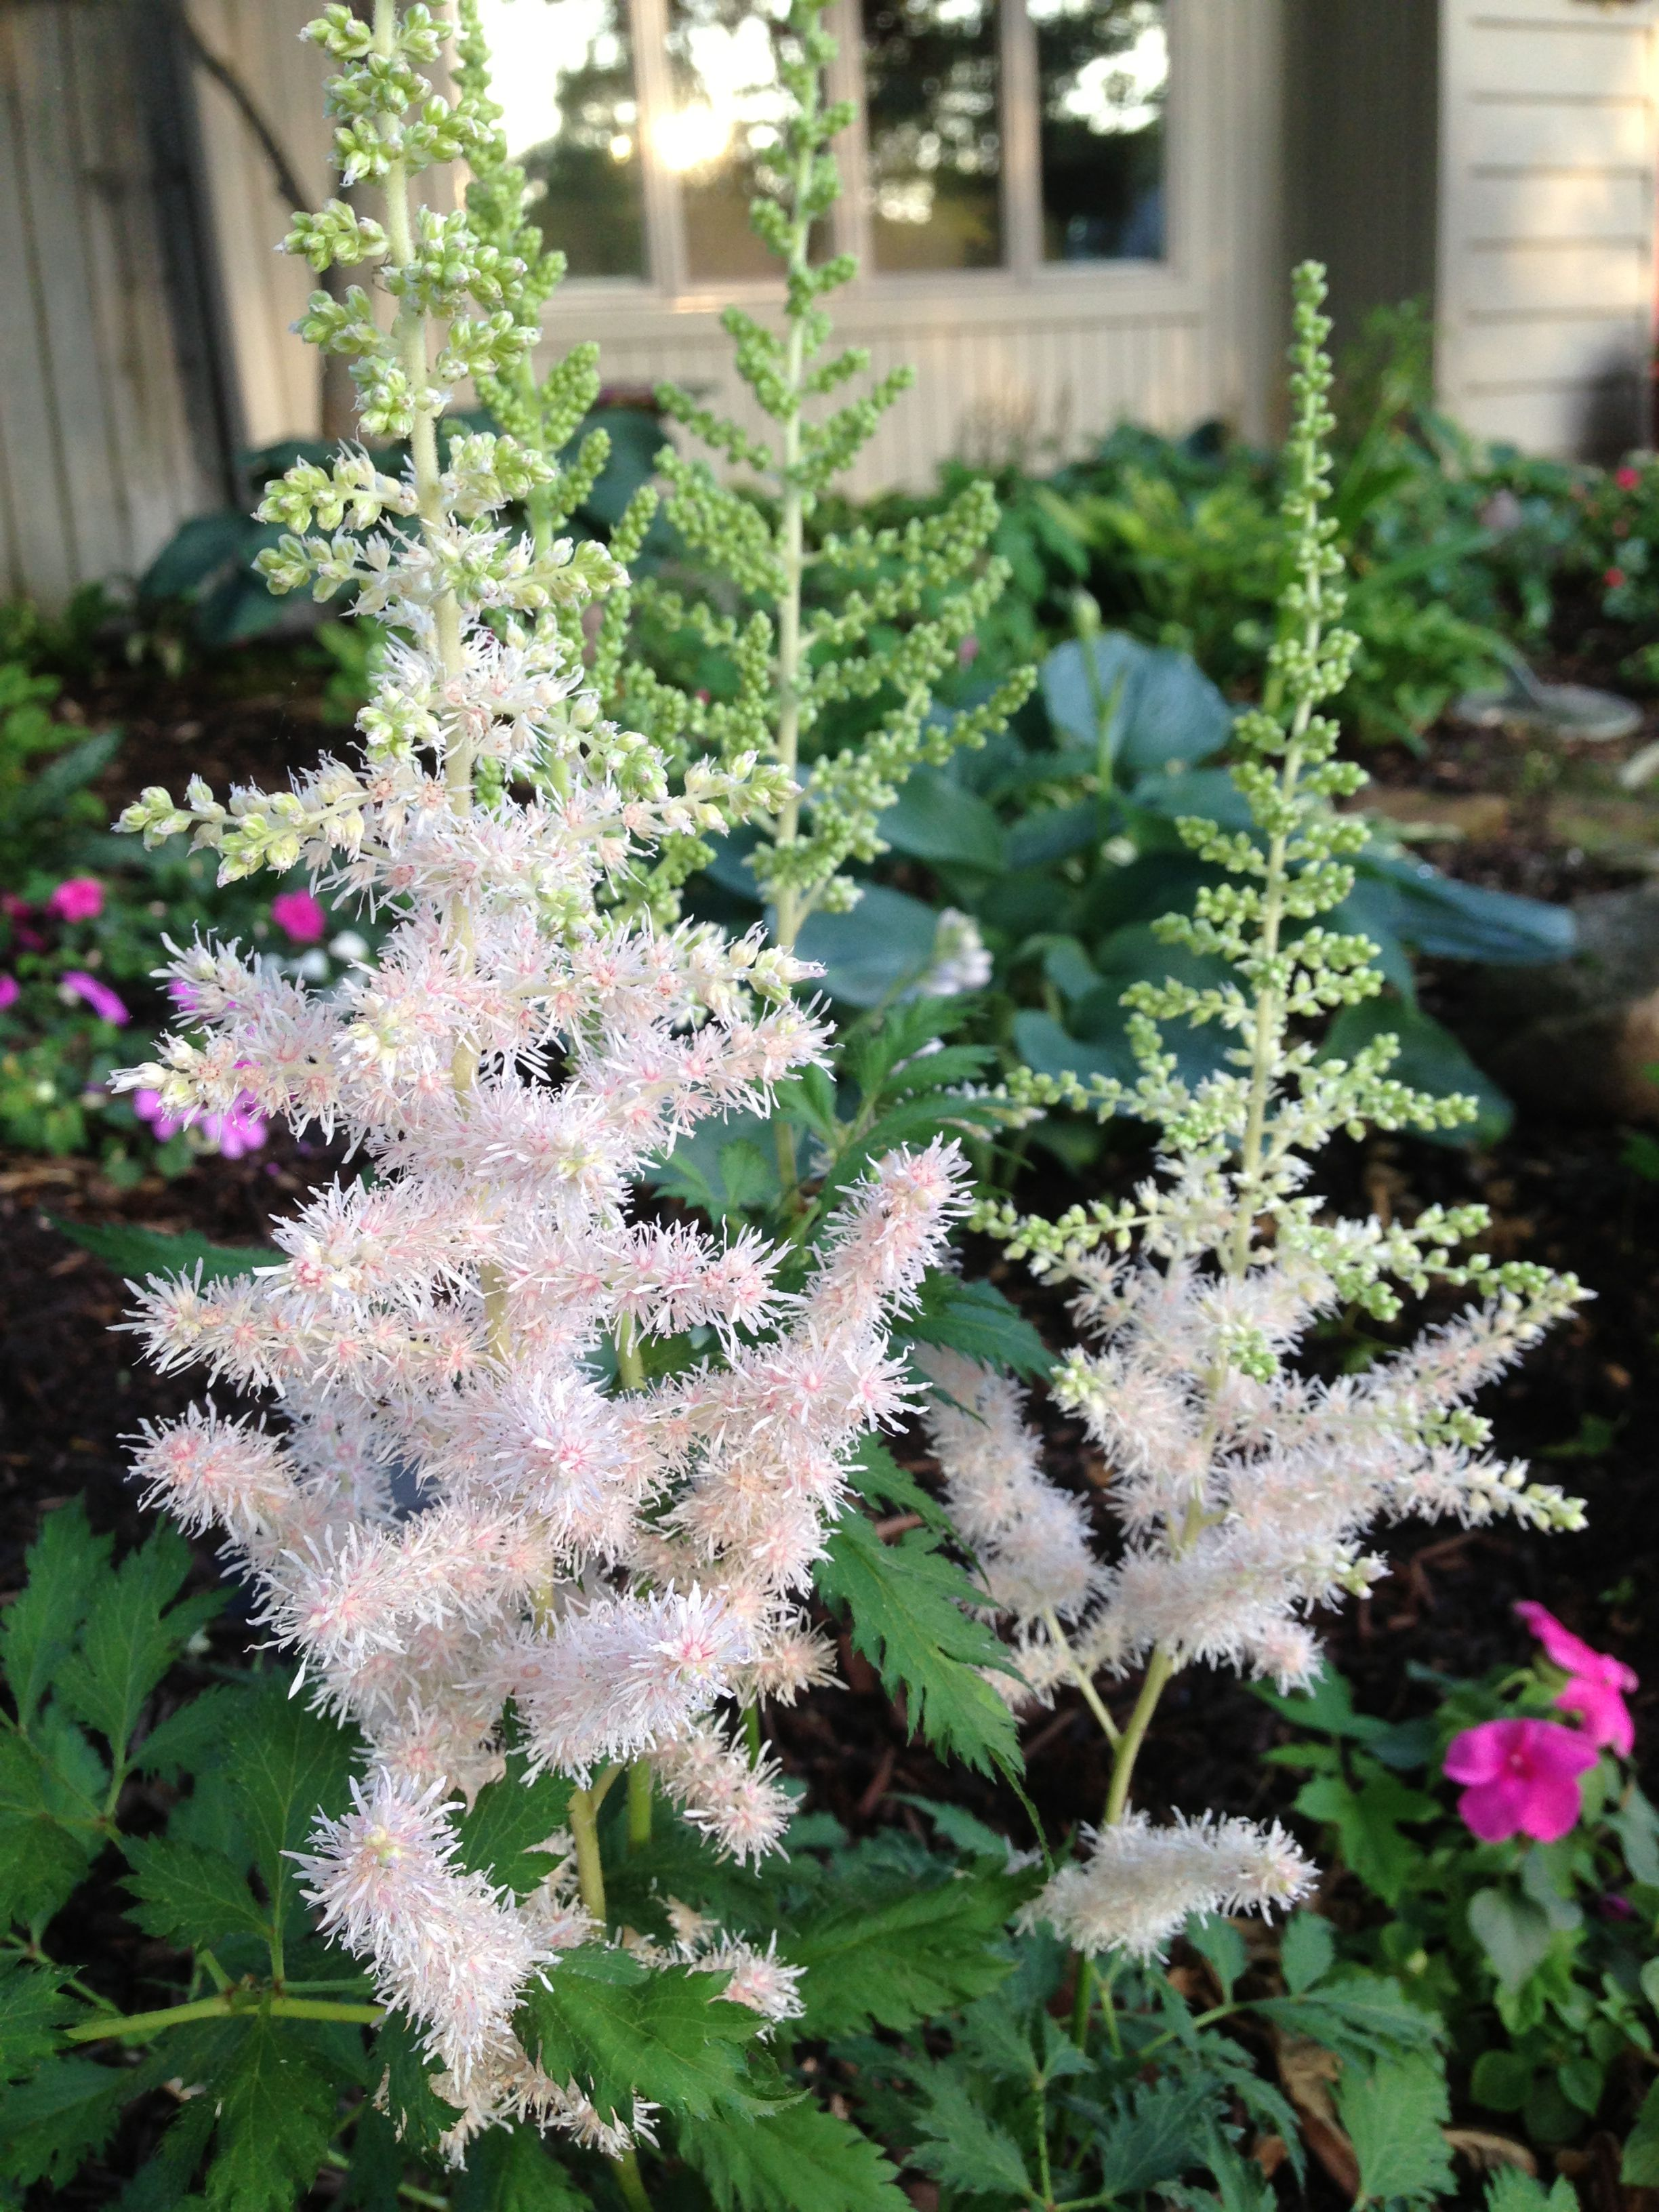 Astilbe Milk And Honey Received Mail Order First Of April And Blooming Gilberthwilandson Surprised Me With Quality Mail Order Plants Garden Journal Plants